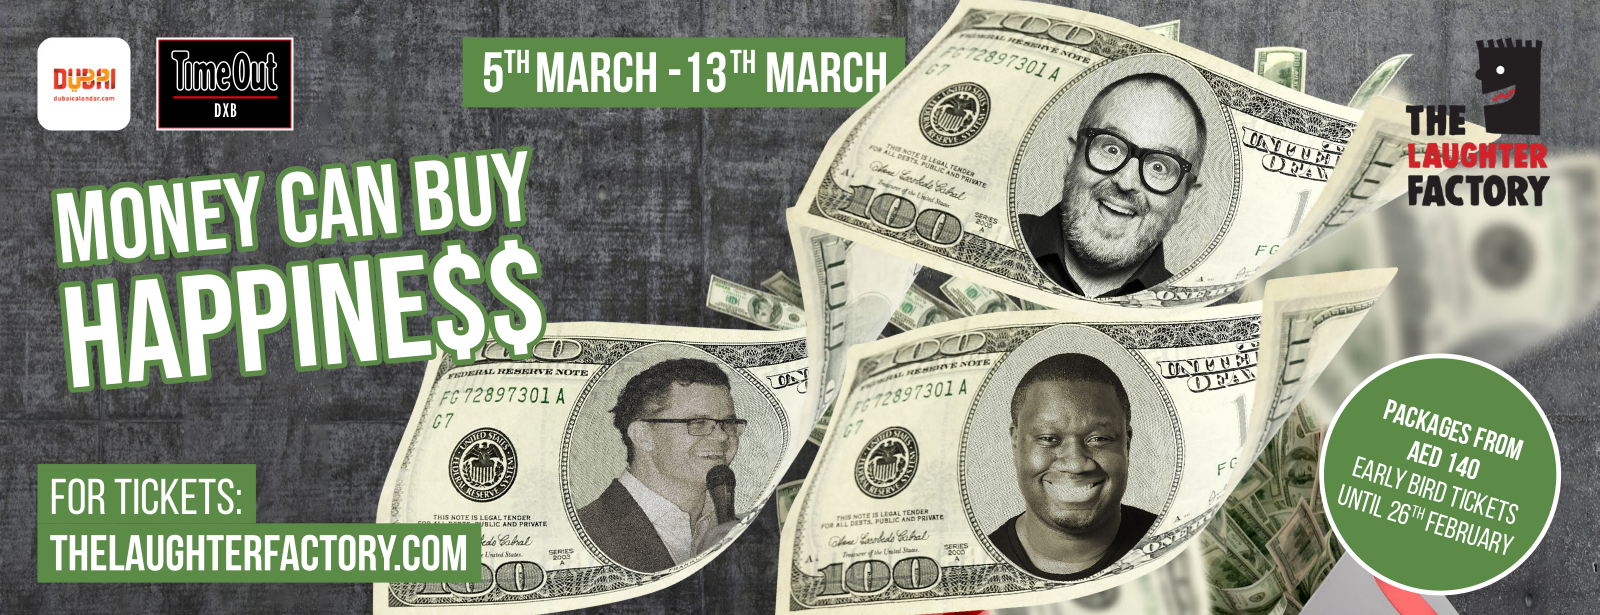 The Laughter Factory's Money CAN Buy Happiness Tour Dubai Mar 2020